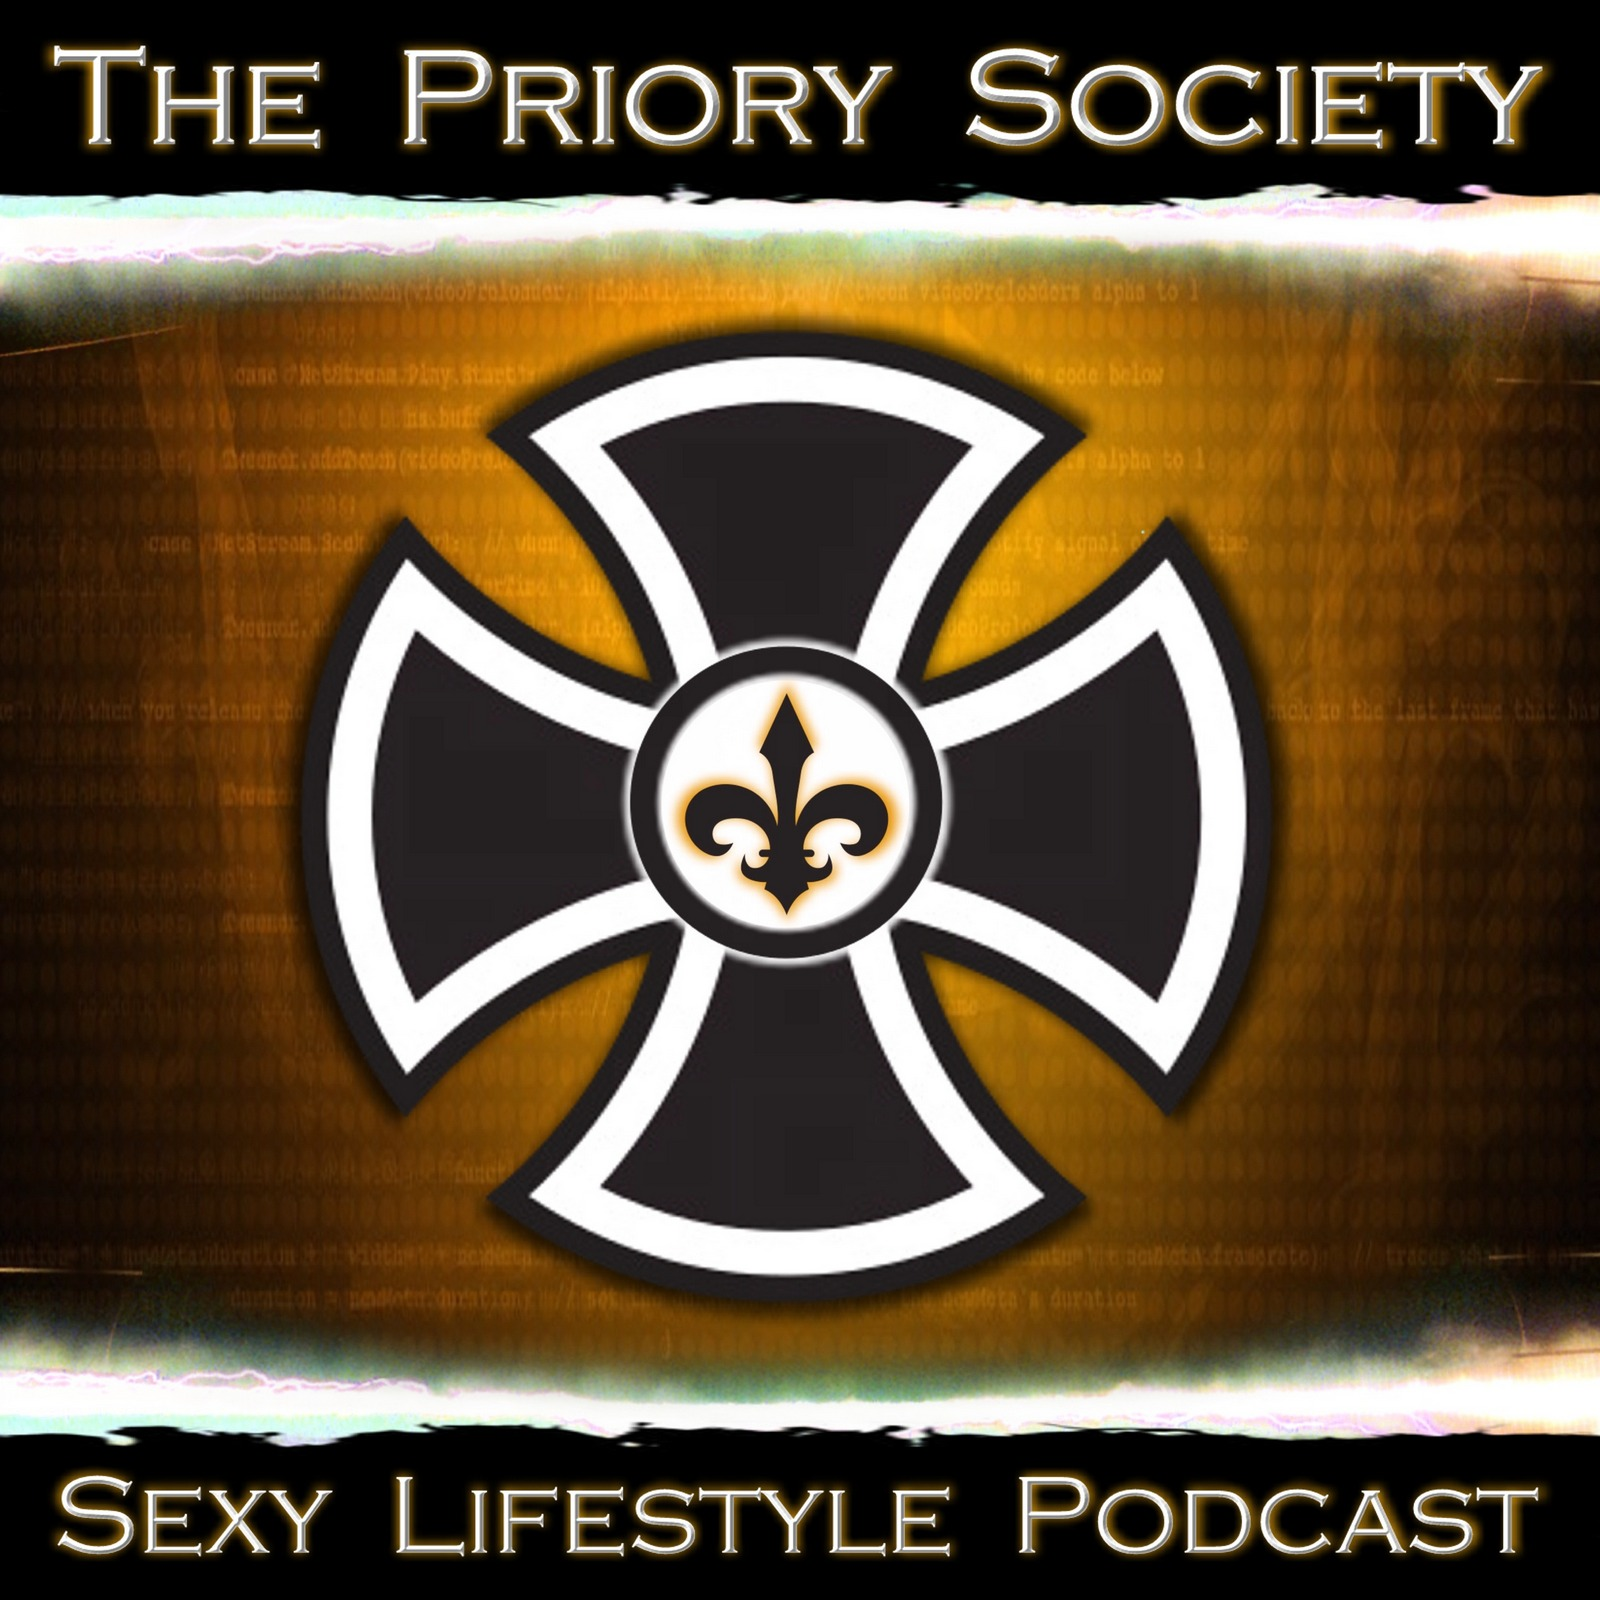 The Priory Society - A Podcast for Swingers show art